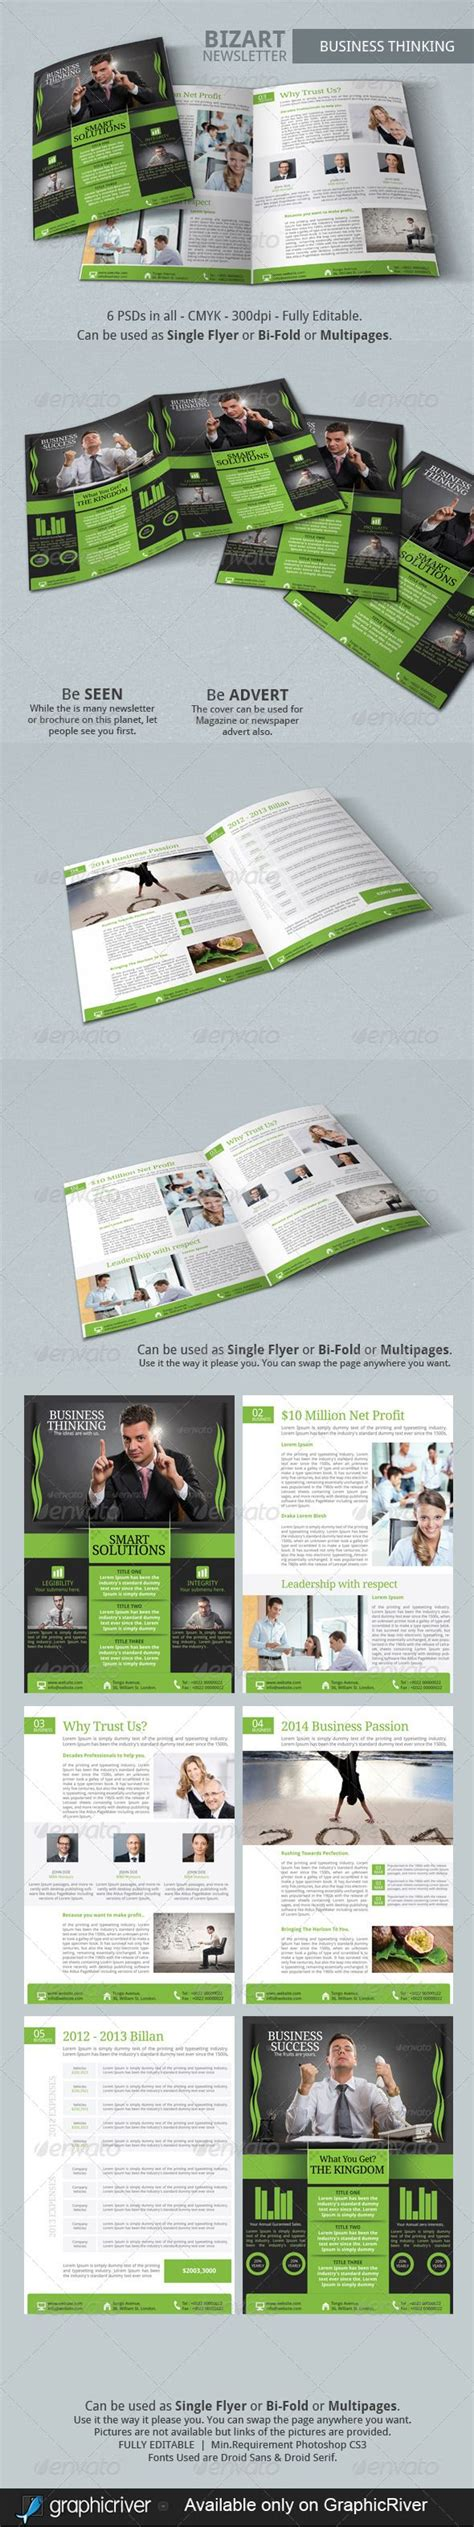 17 Best Images About Newsletter Exles Adobe Photoshop On Pinterest Newsletter Templates Print Newsletter Templates Photoshop